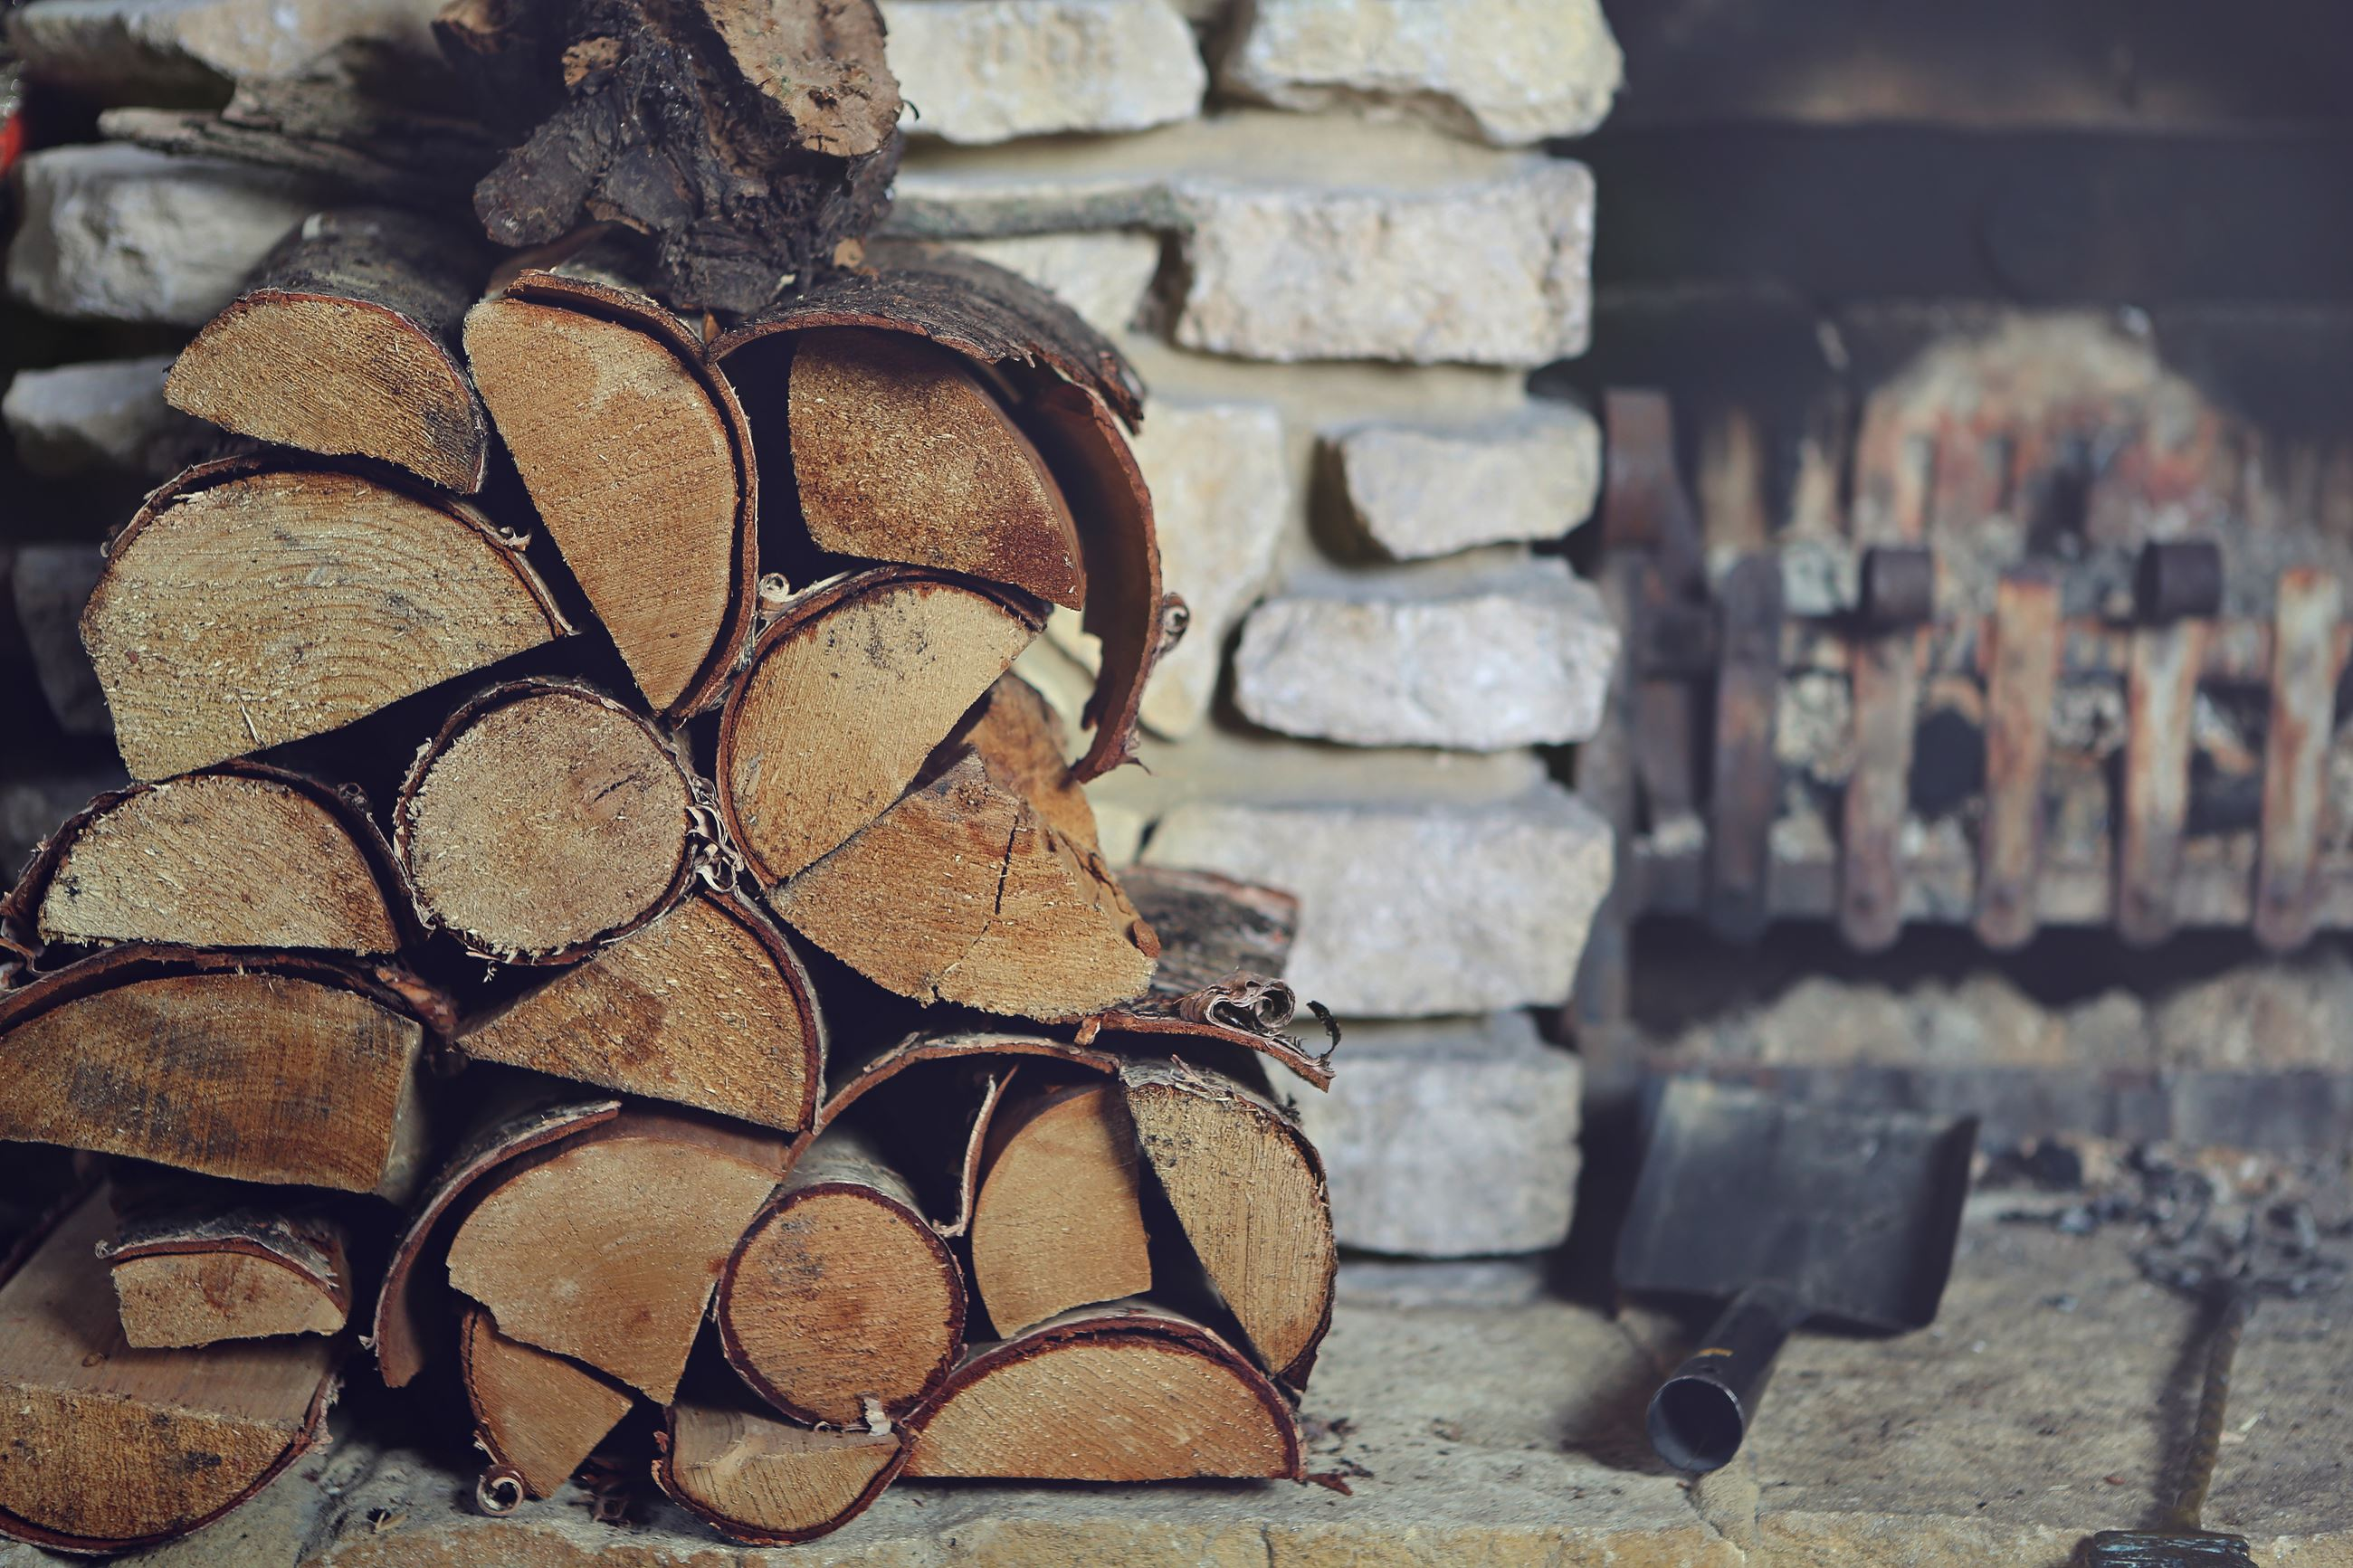 Firewood sitting on a fire place